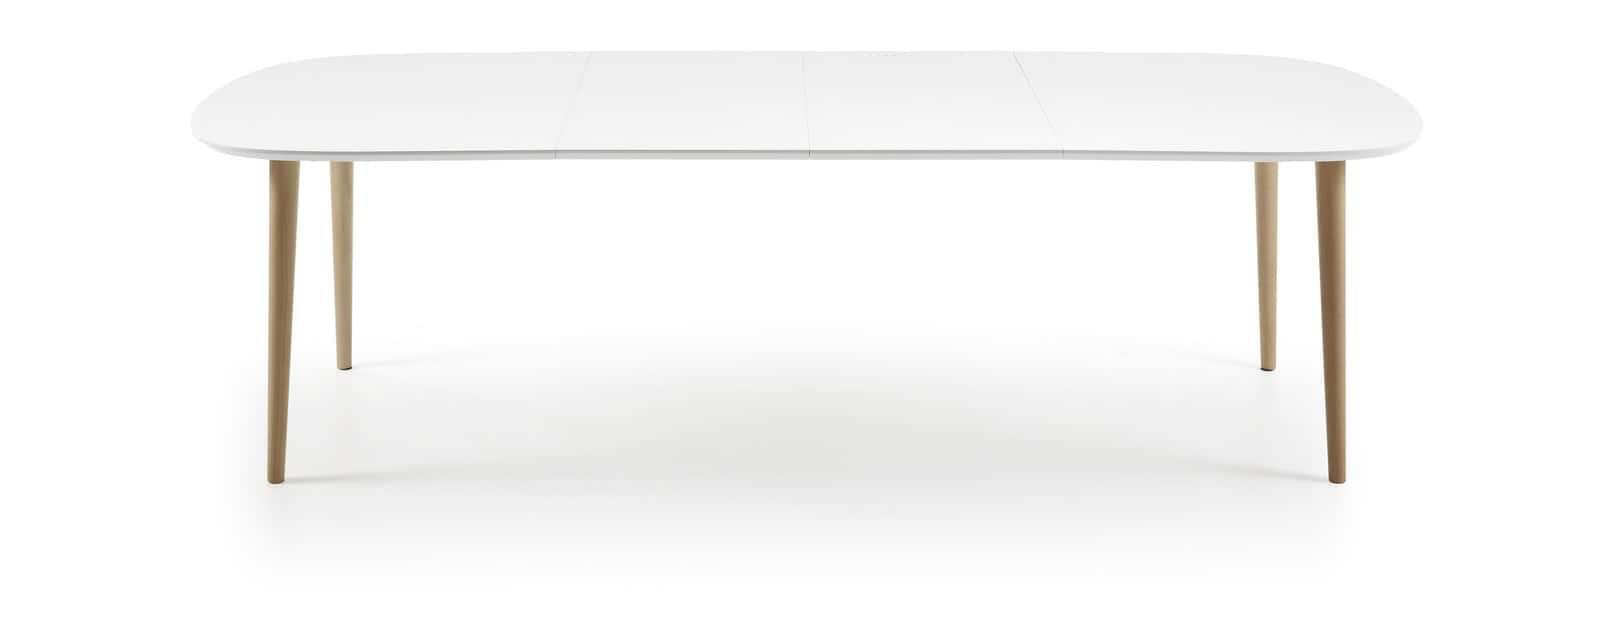 Isley 160 Extending Dining Table - White